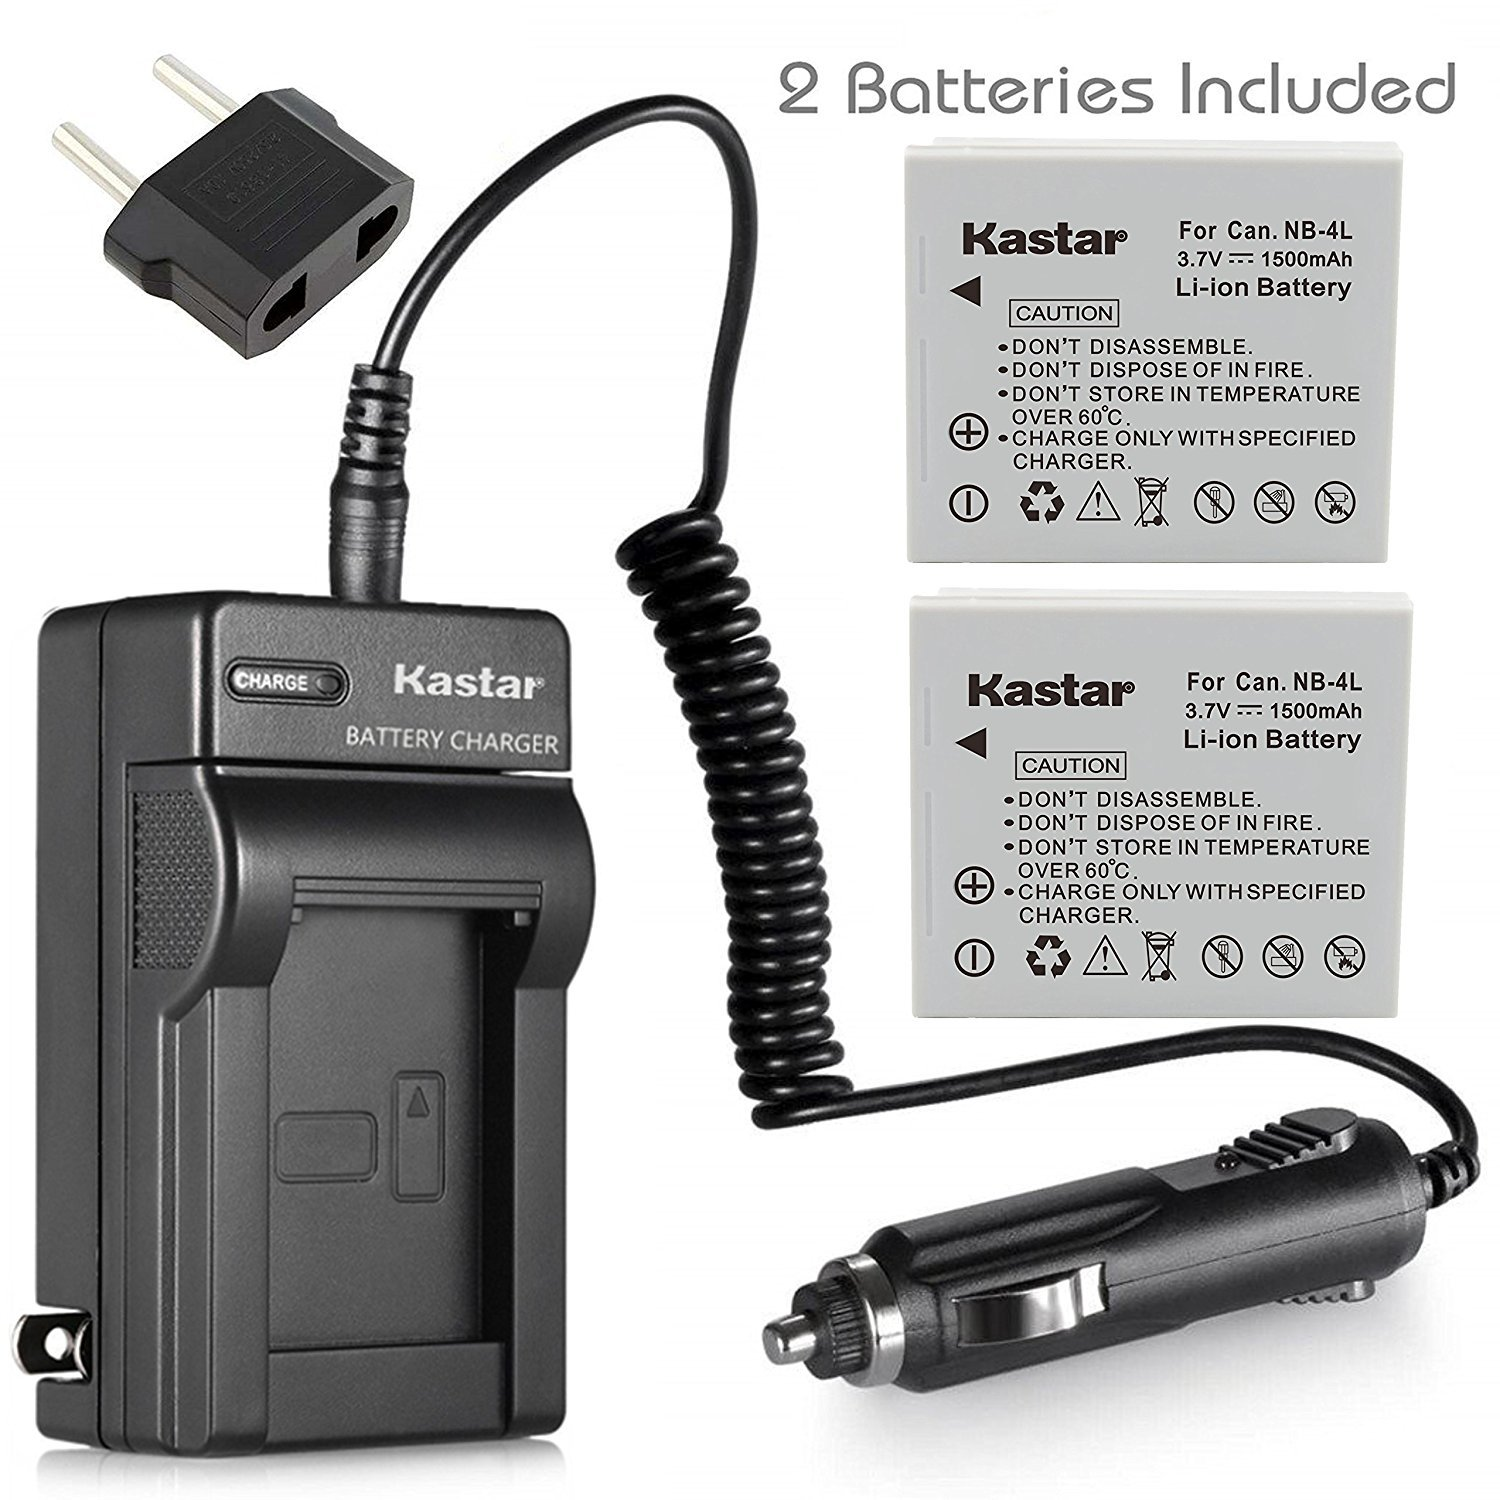 Kastar Battery Charger with Car Charger and 2 Battery for Canon Powershot TX1 SD750 SD1000 SD780 IS SD1400 IS ELPH 100 HS ELPH 300 HS ELPH 310 HS ELPH 330 HS as NB-4L NB4L NB-4LH NB4LH CB-2LV